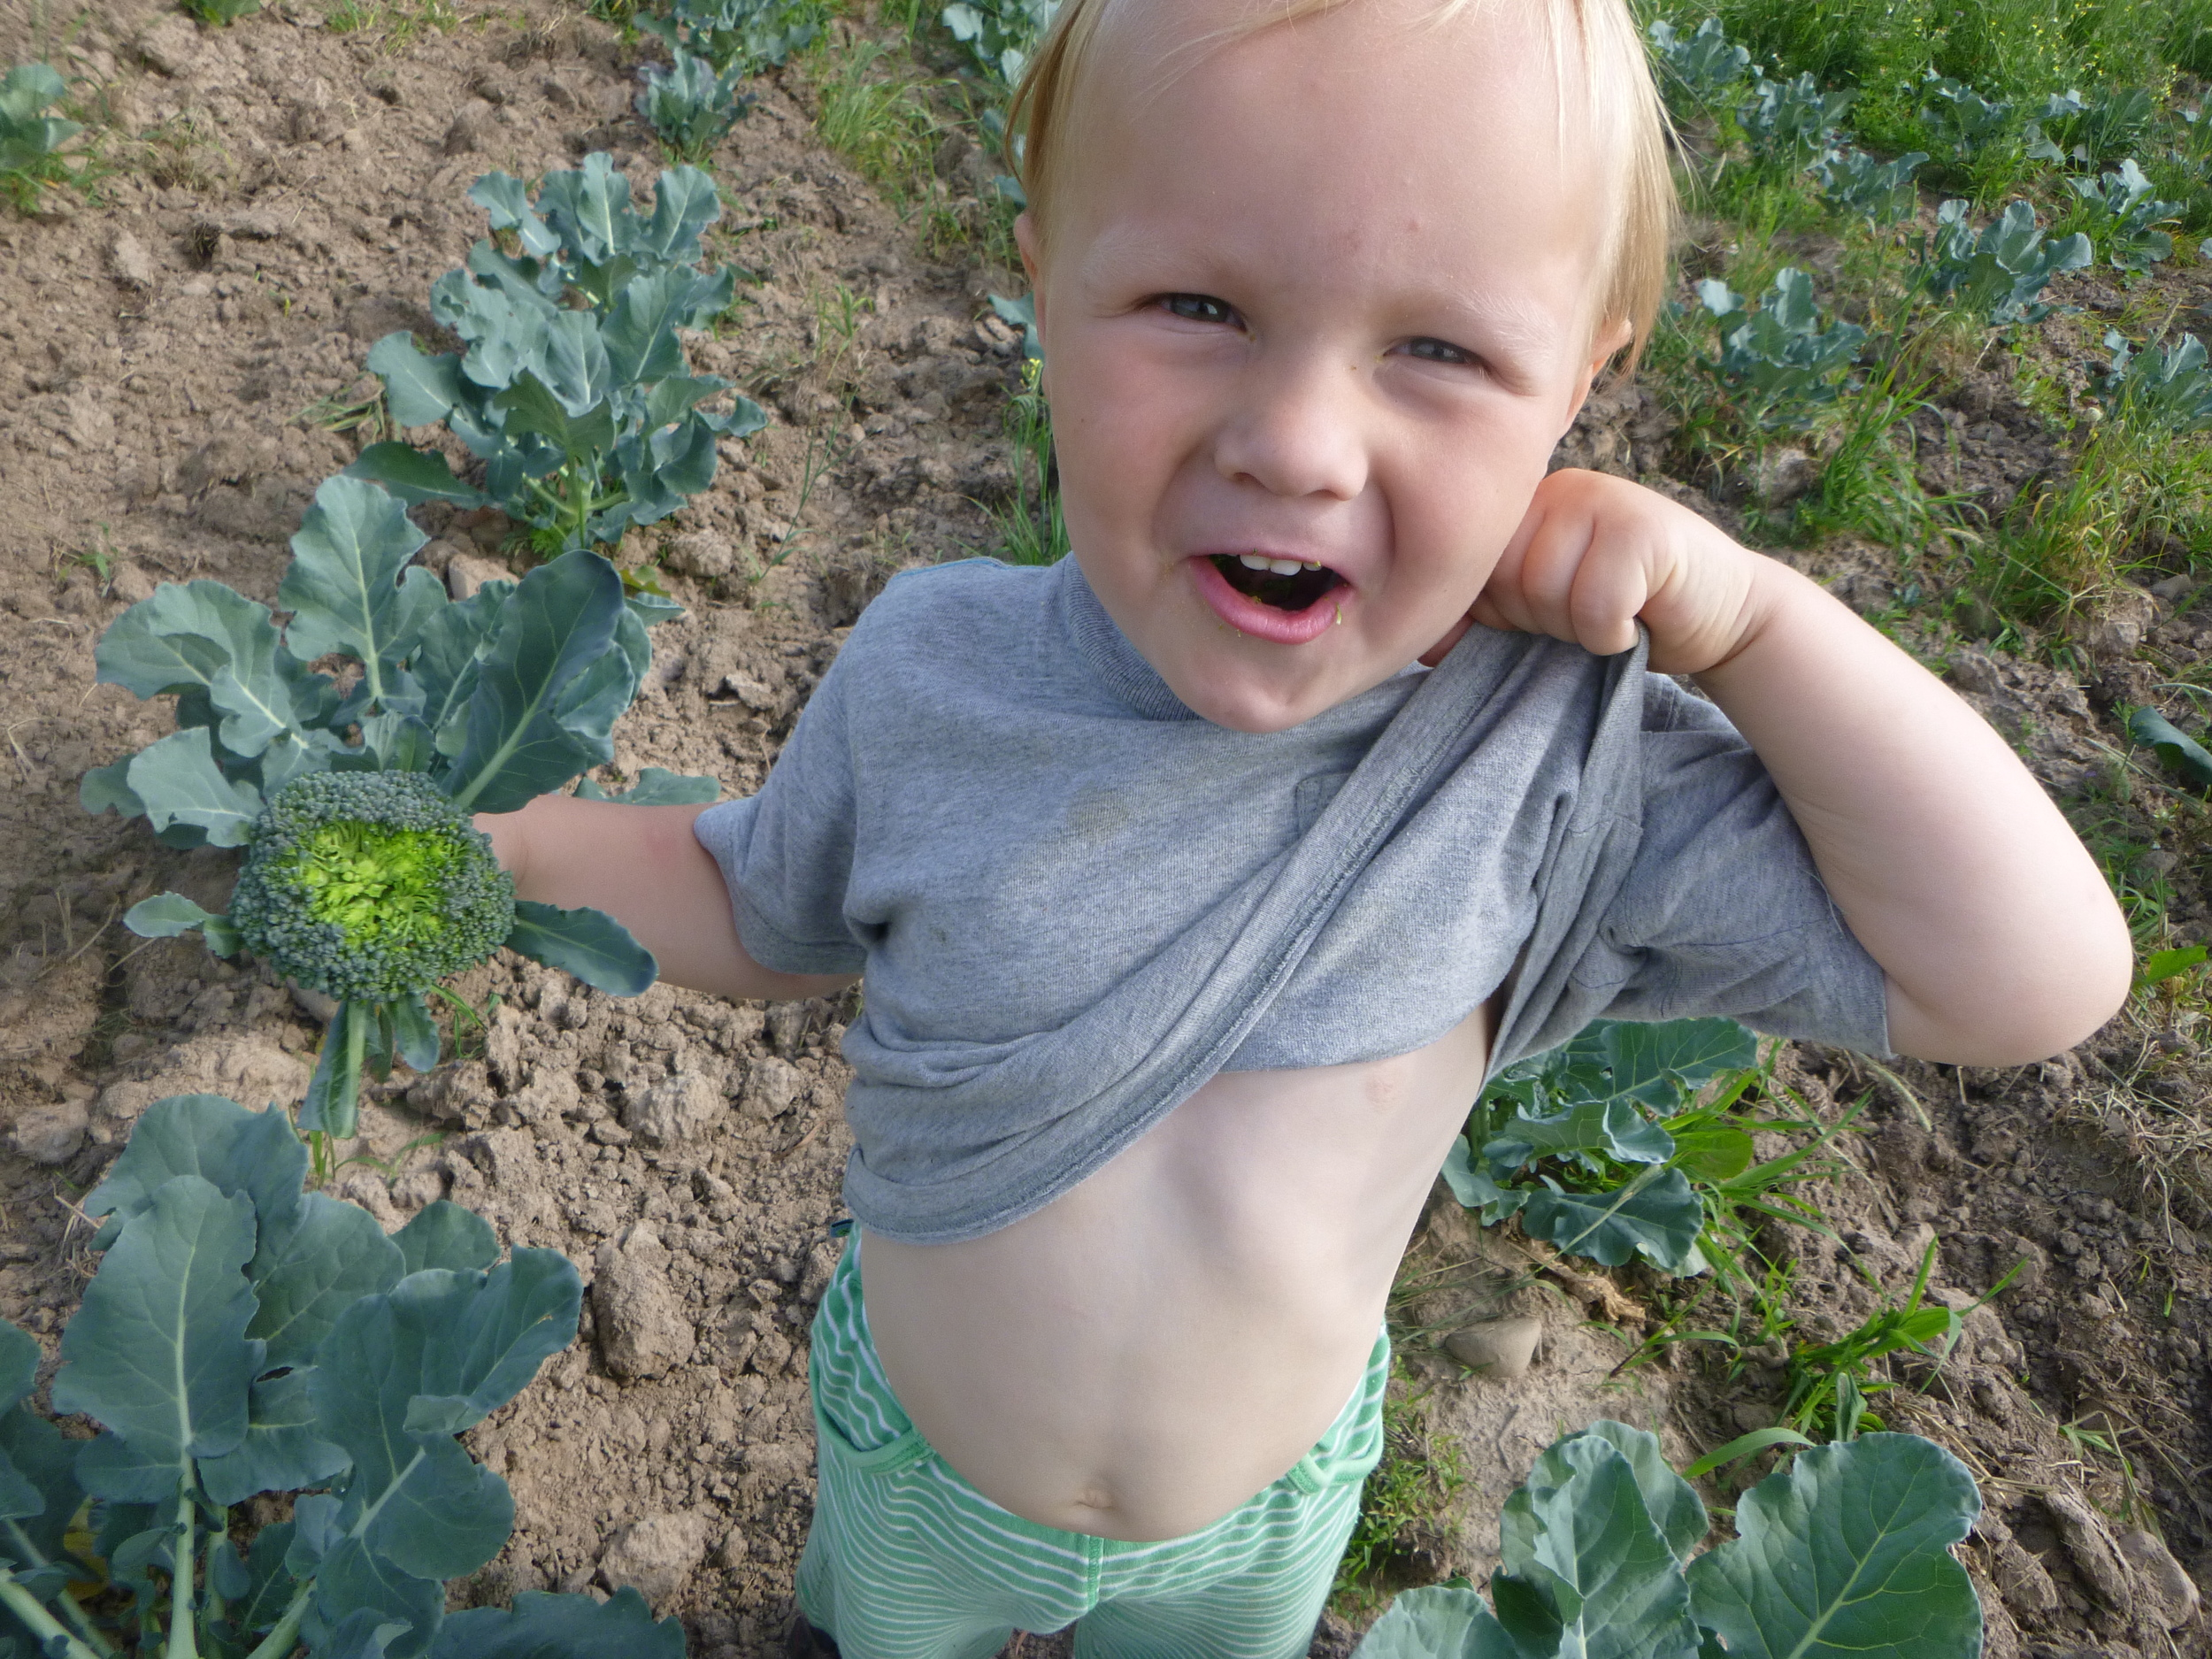 Broccoli goes in Otto's belly!